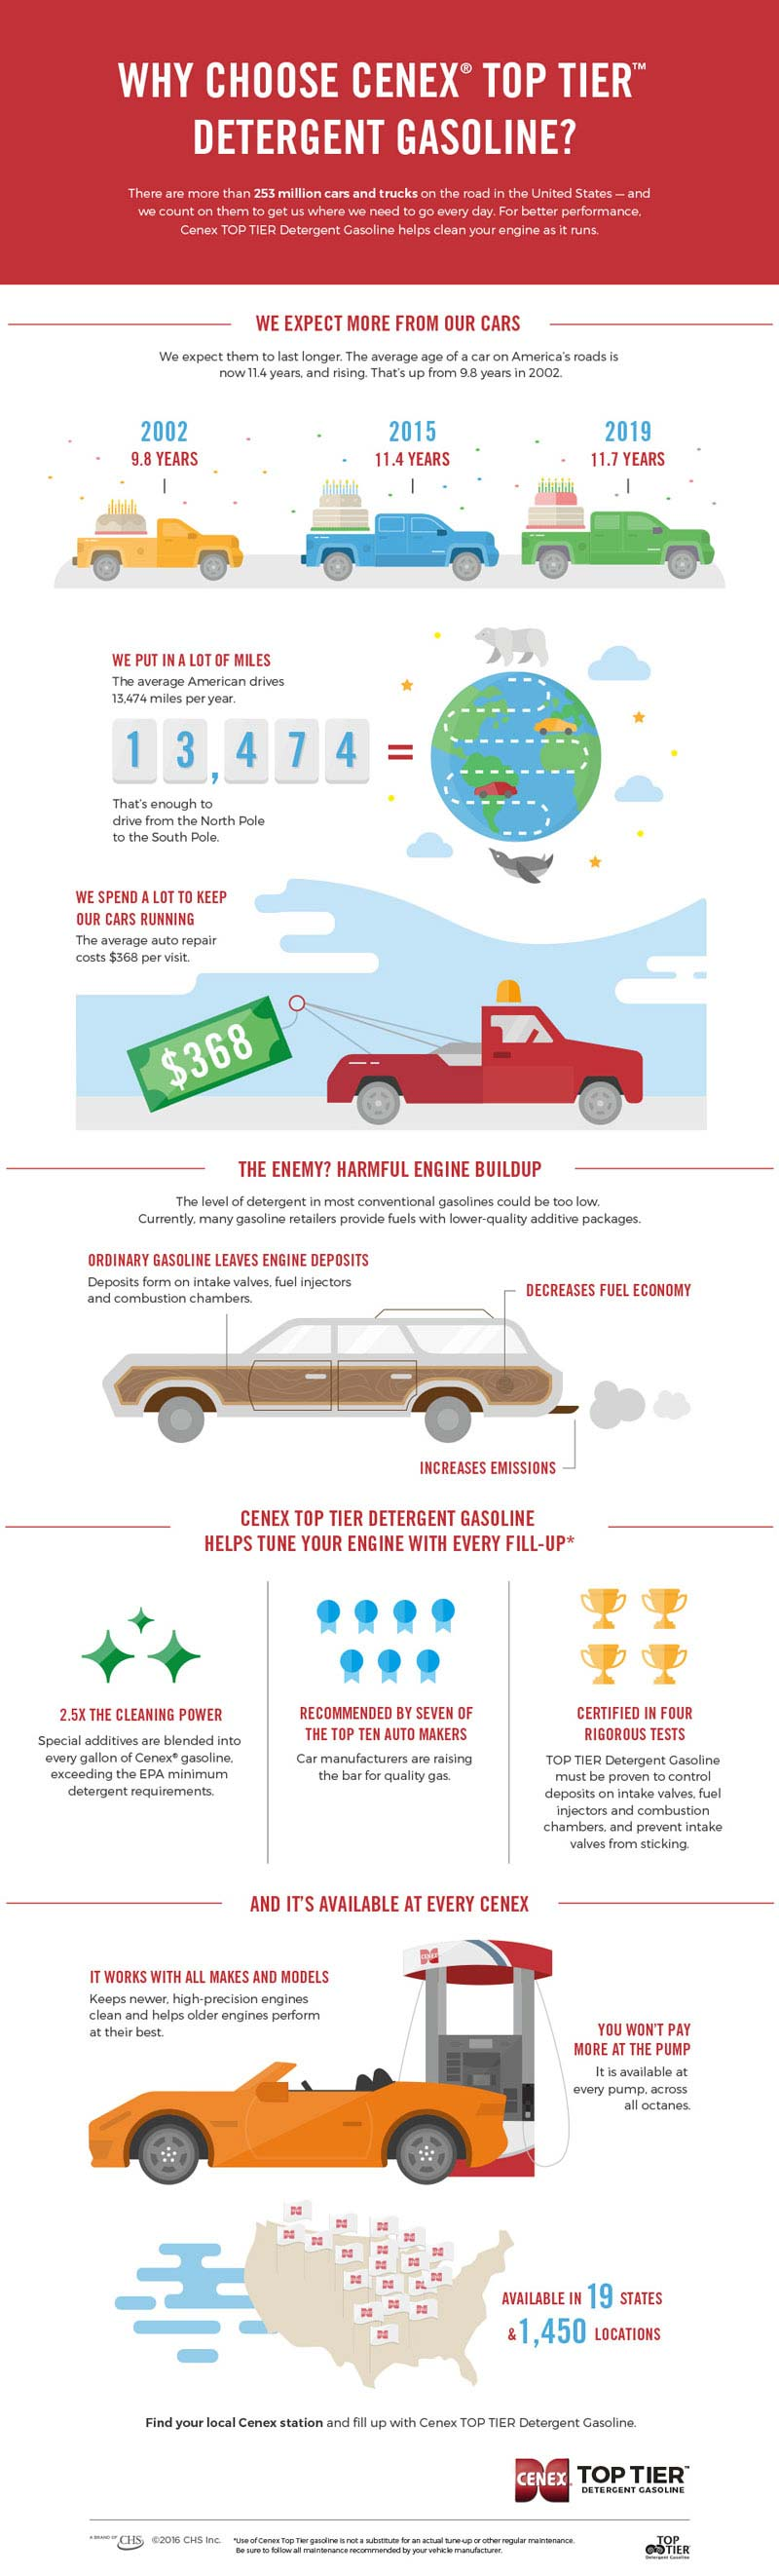 Cenex Top Tier Detergent Gasoline Infographic